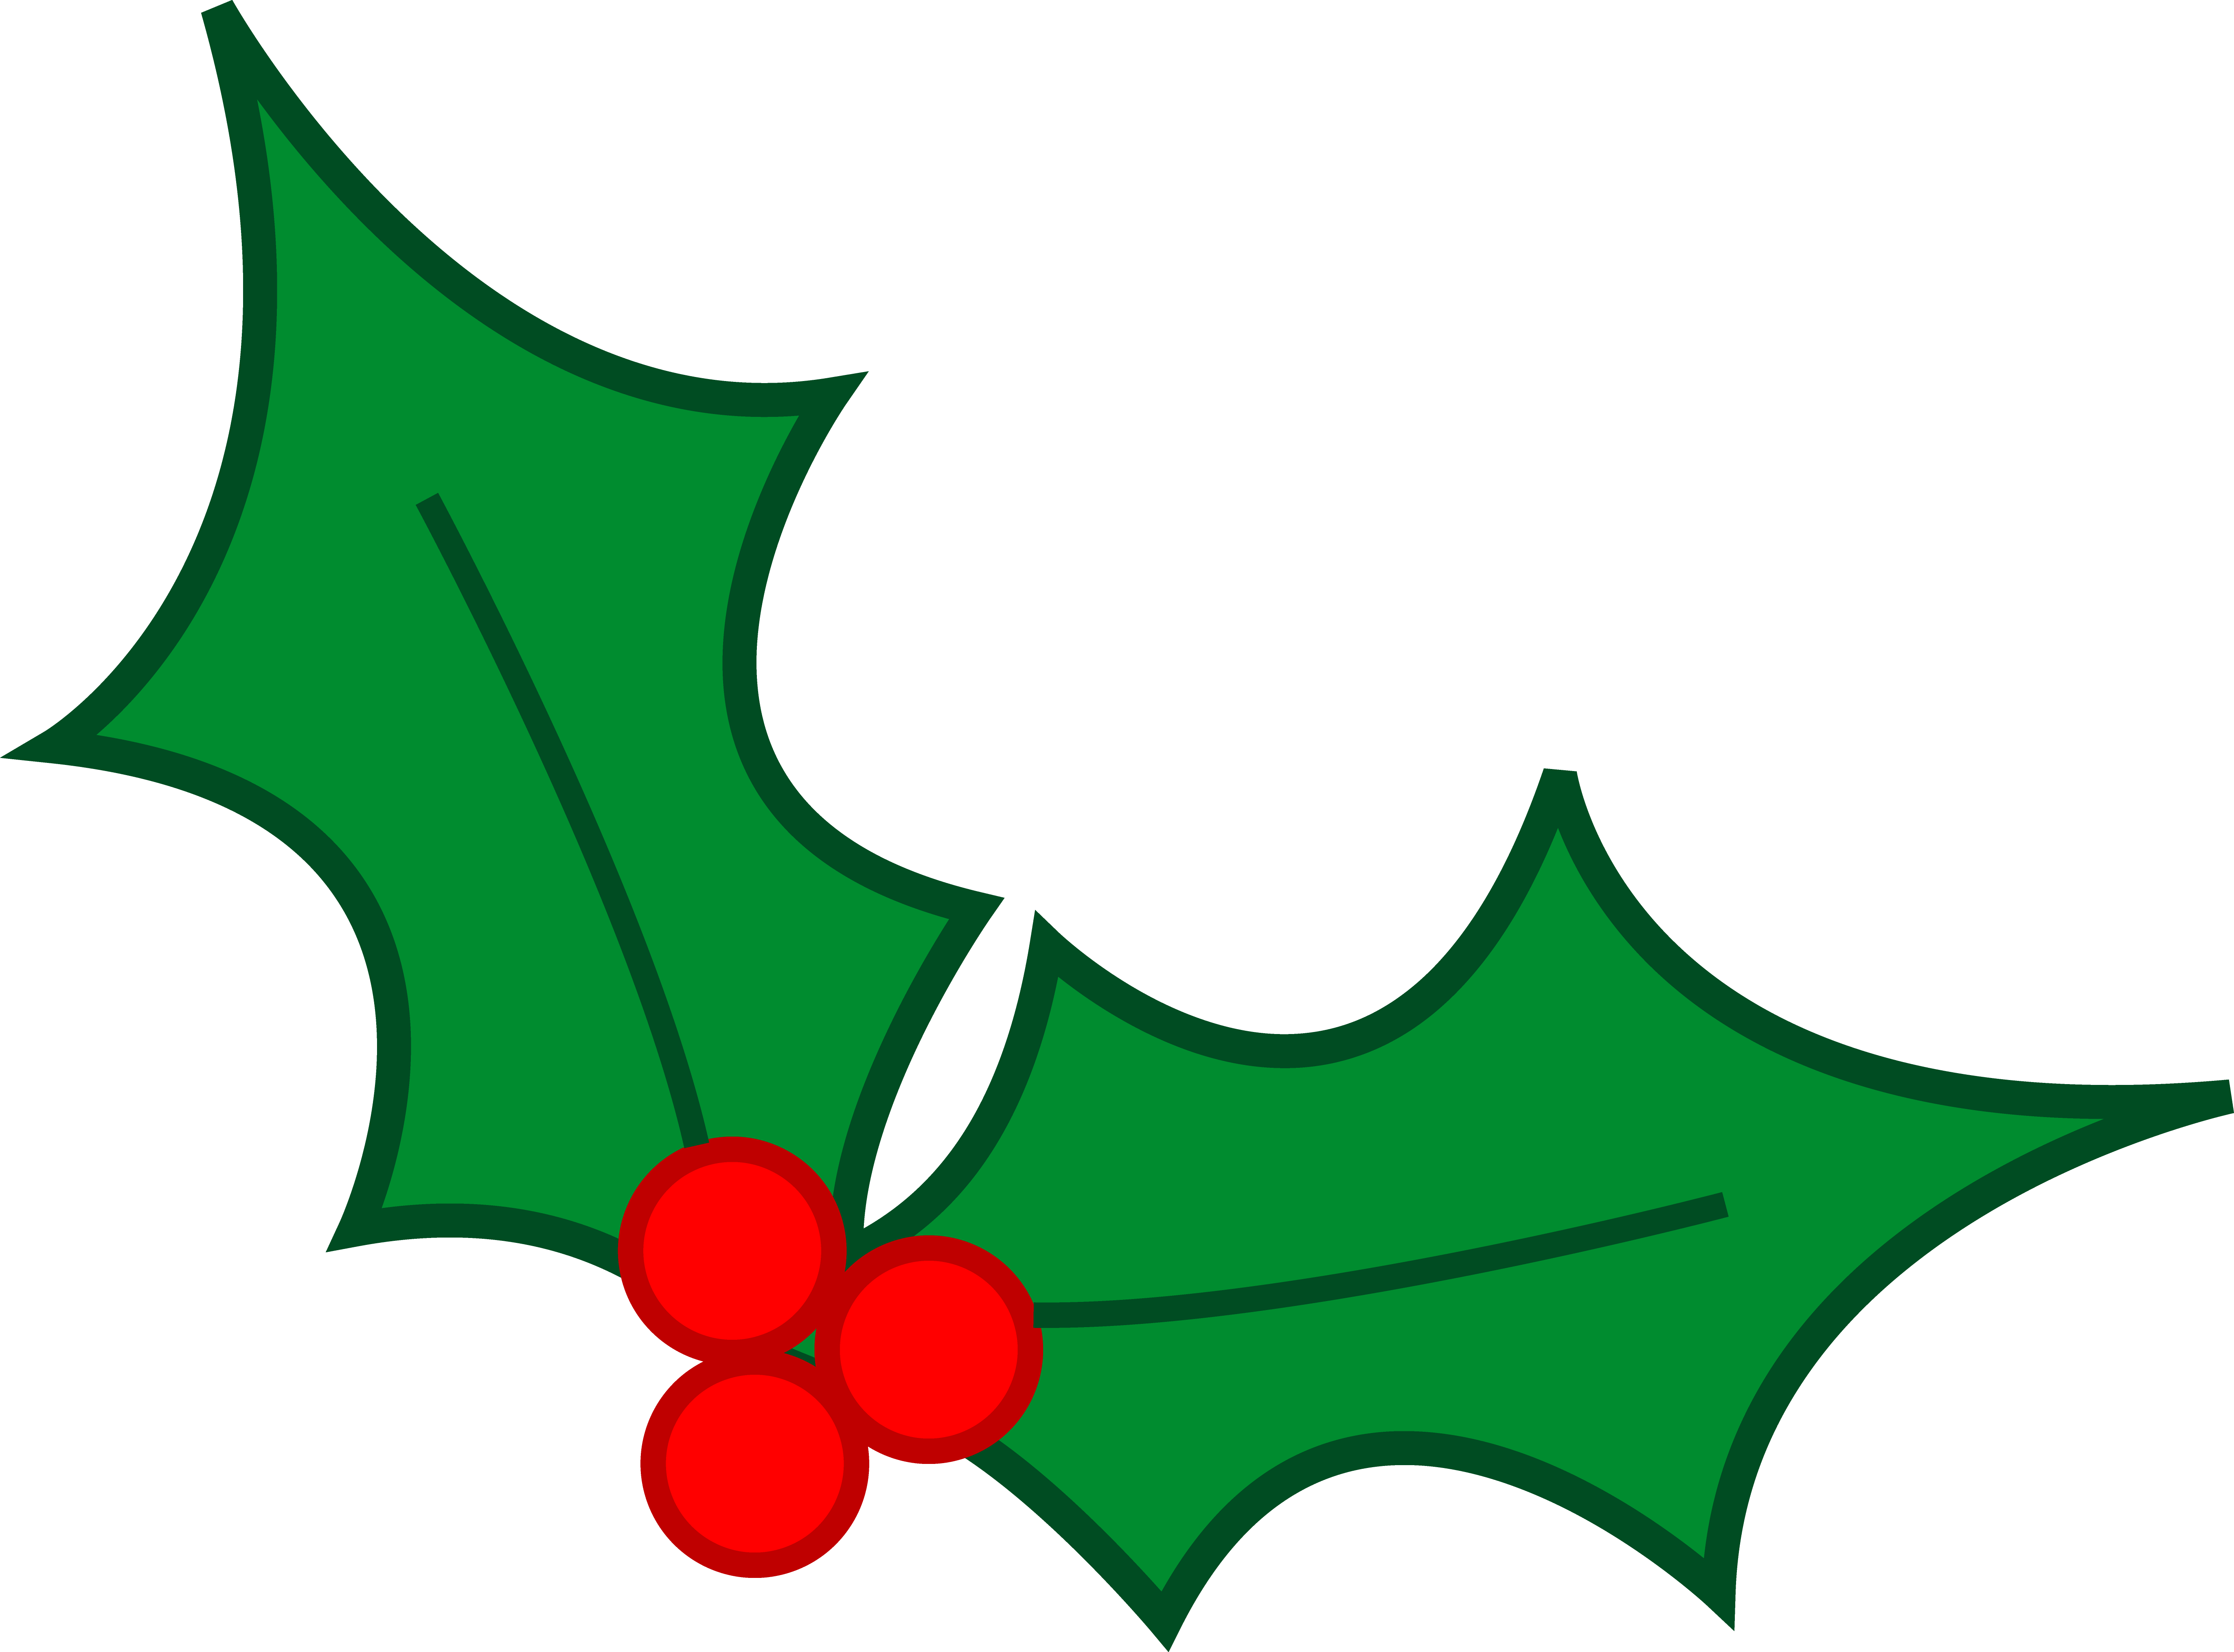 5487x4058 Green Christmas Holly Leaves